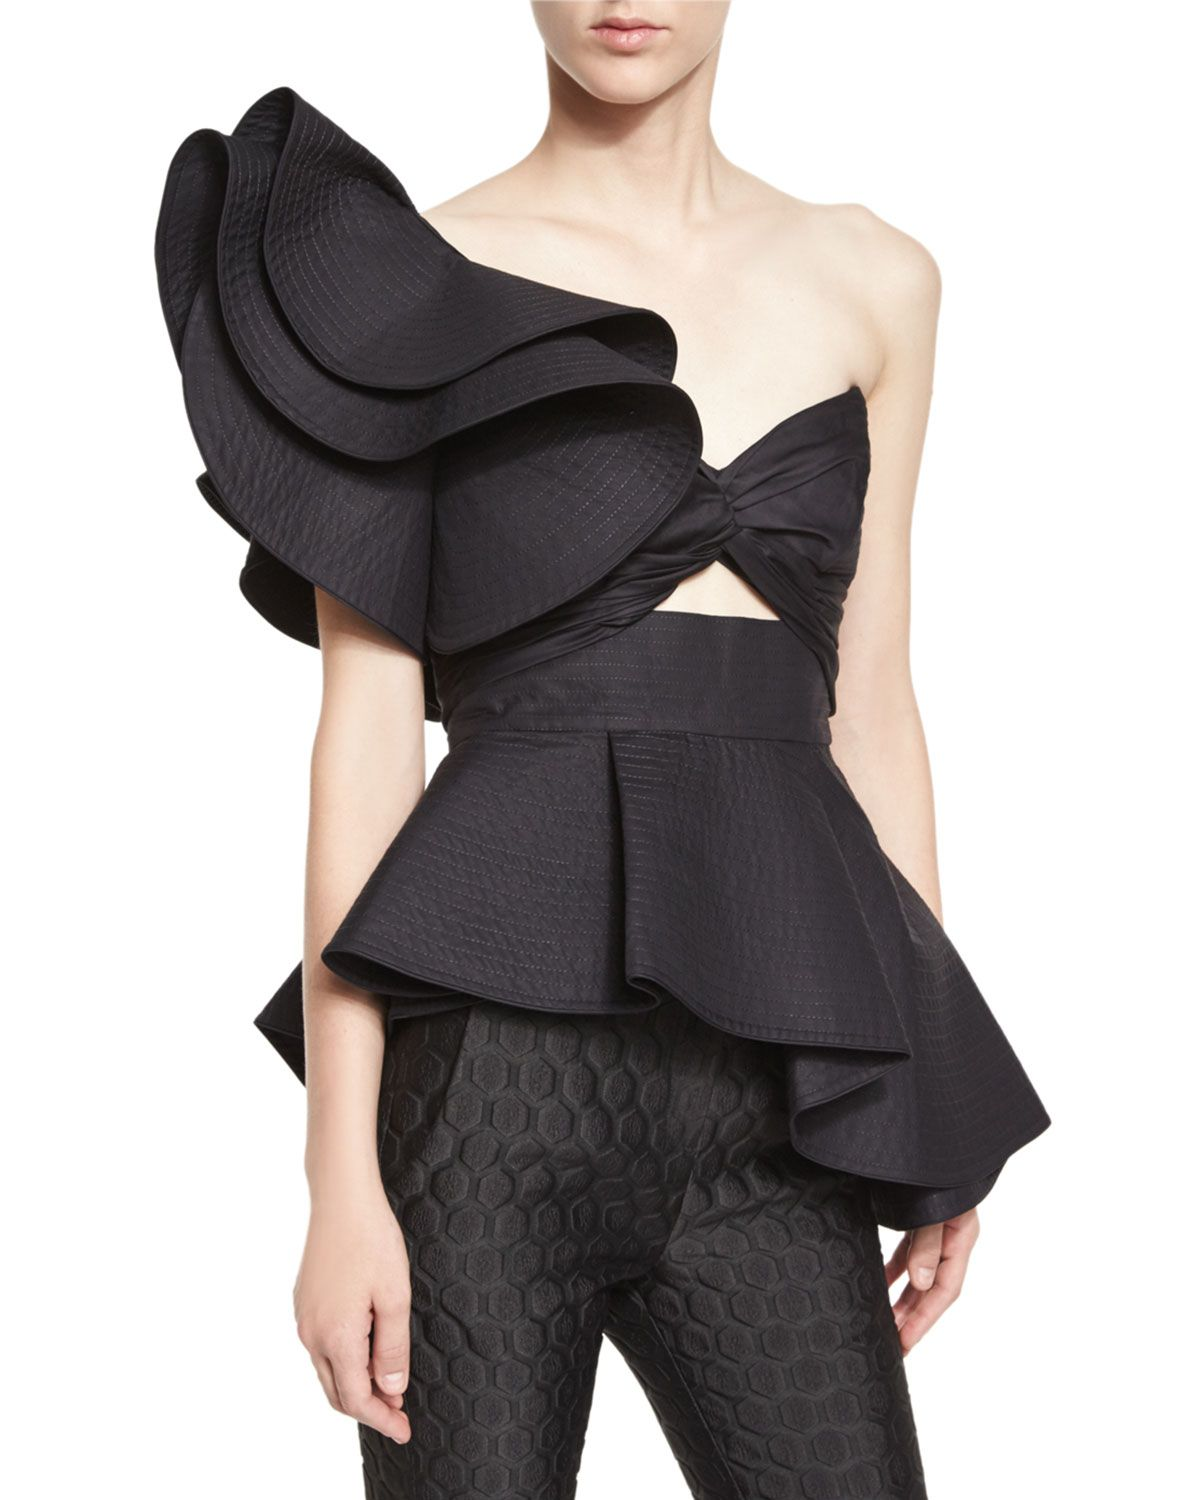 33364326c3361f Maria de Medici Large-Ruffle One-Shoulder Bandeau Top, Black - Johanna Ortiz